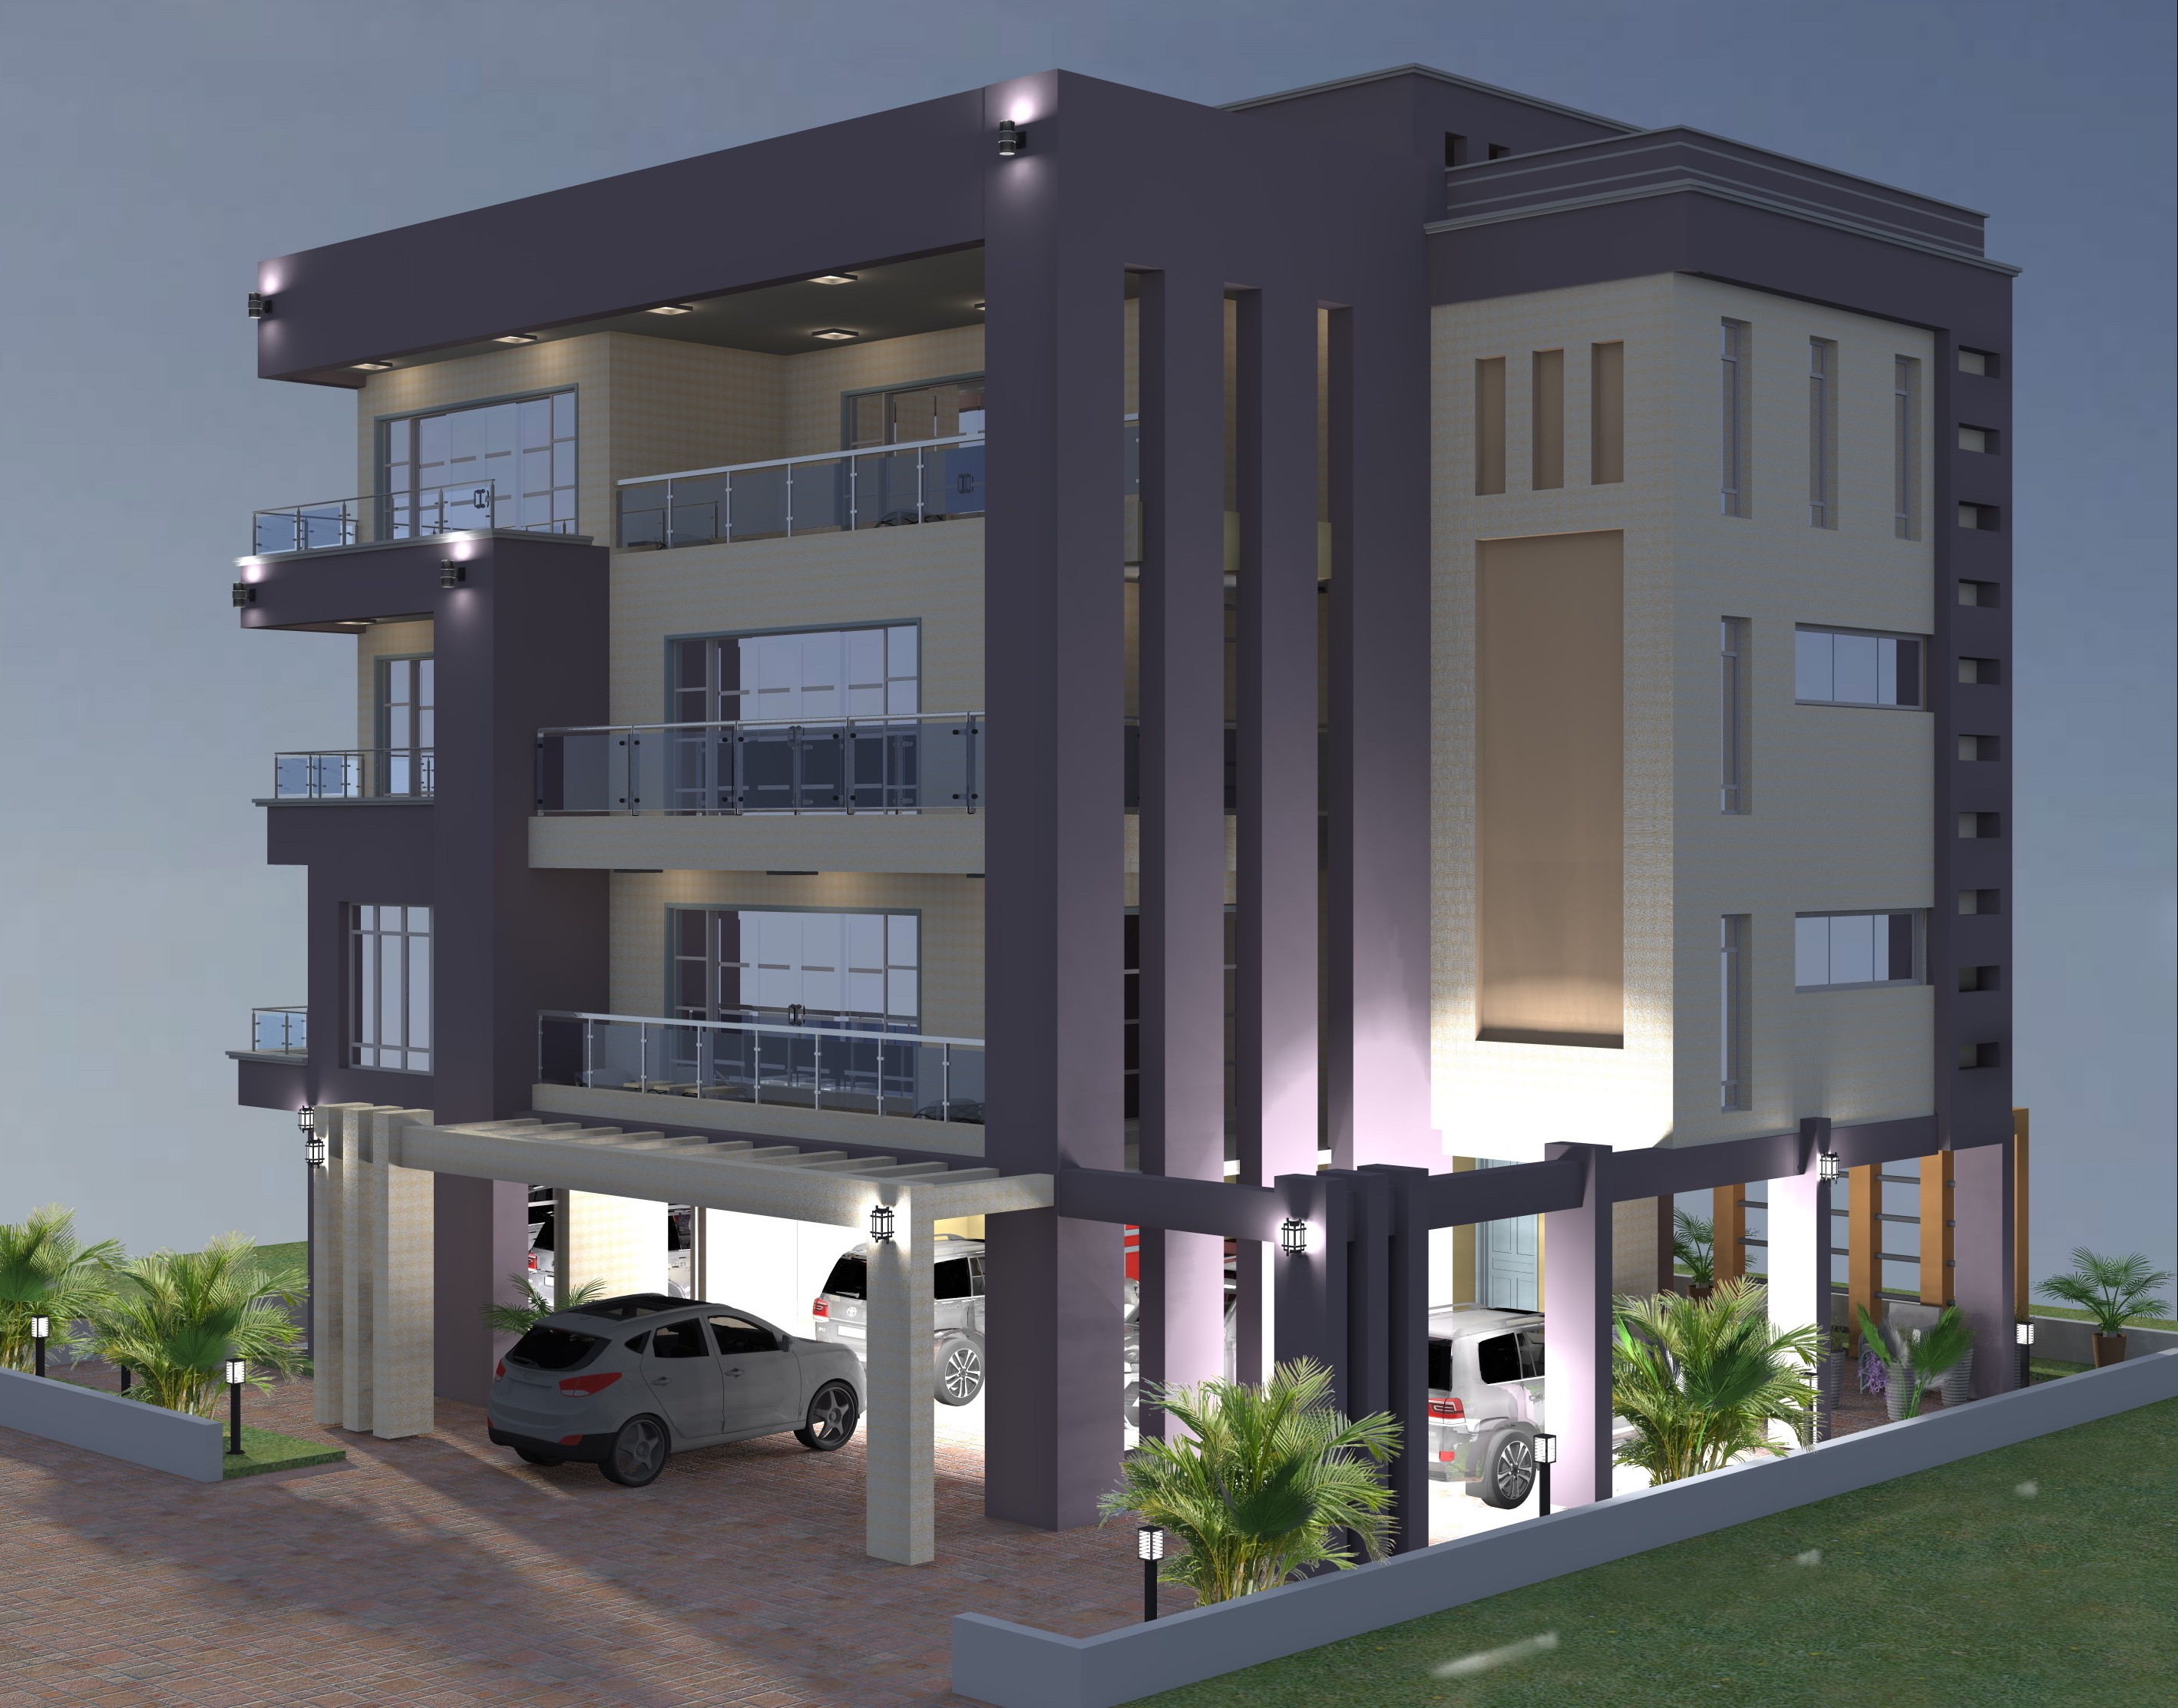 PROPOSED LUXURIOUS  SIX MAISONETTE